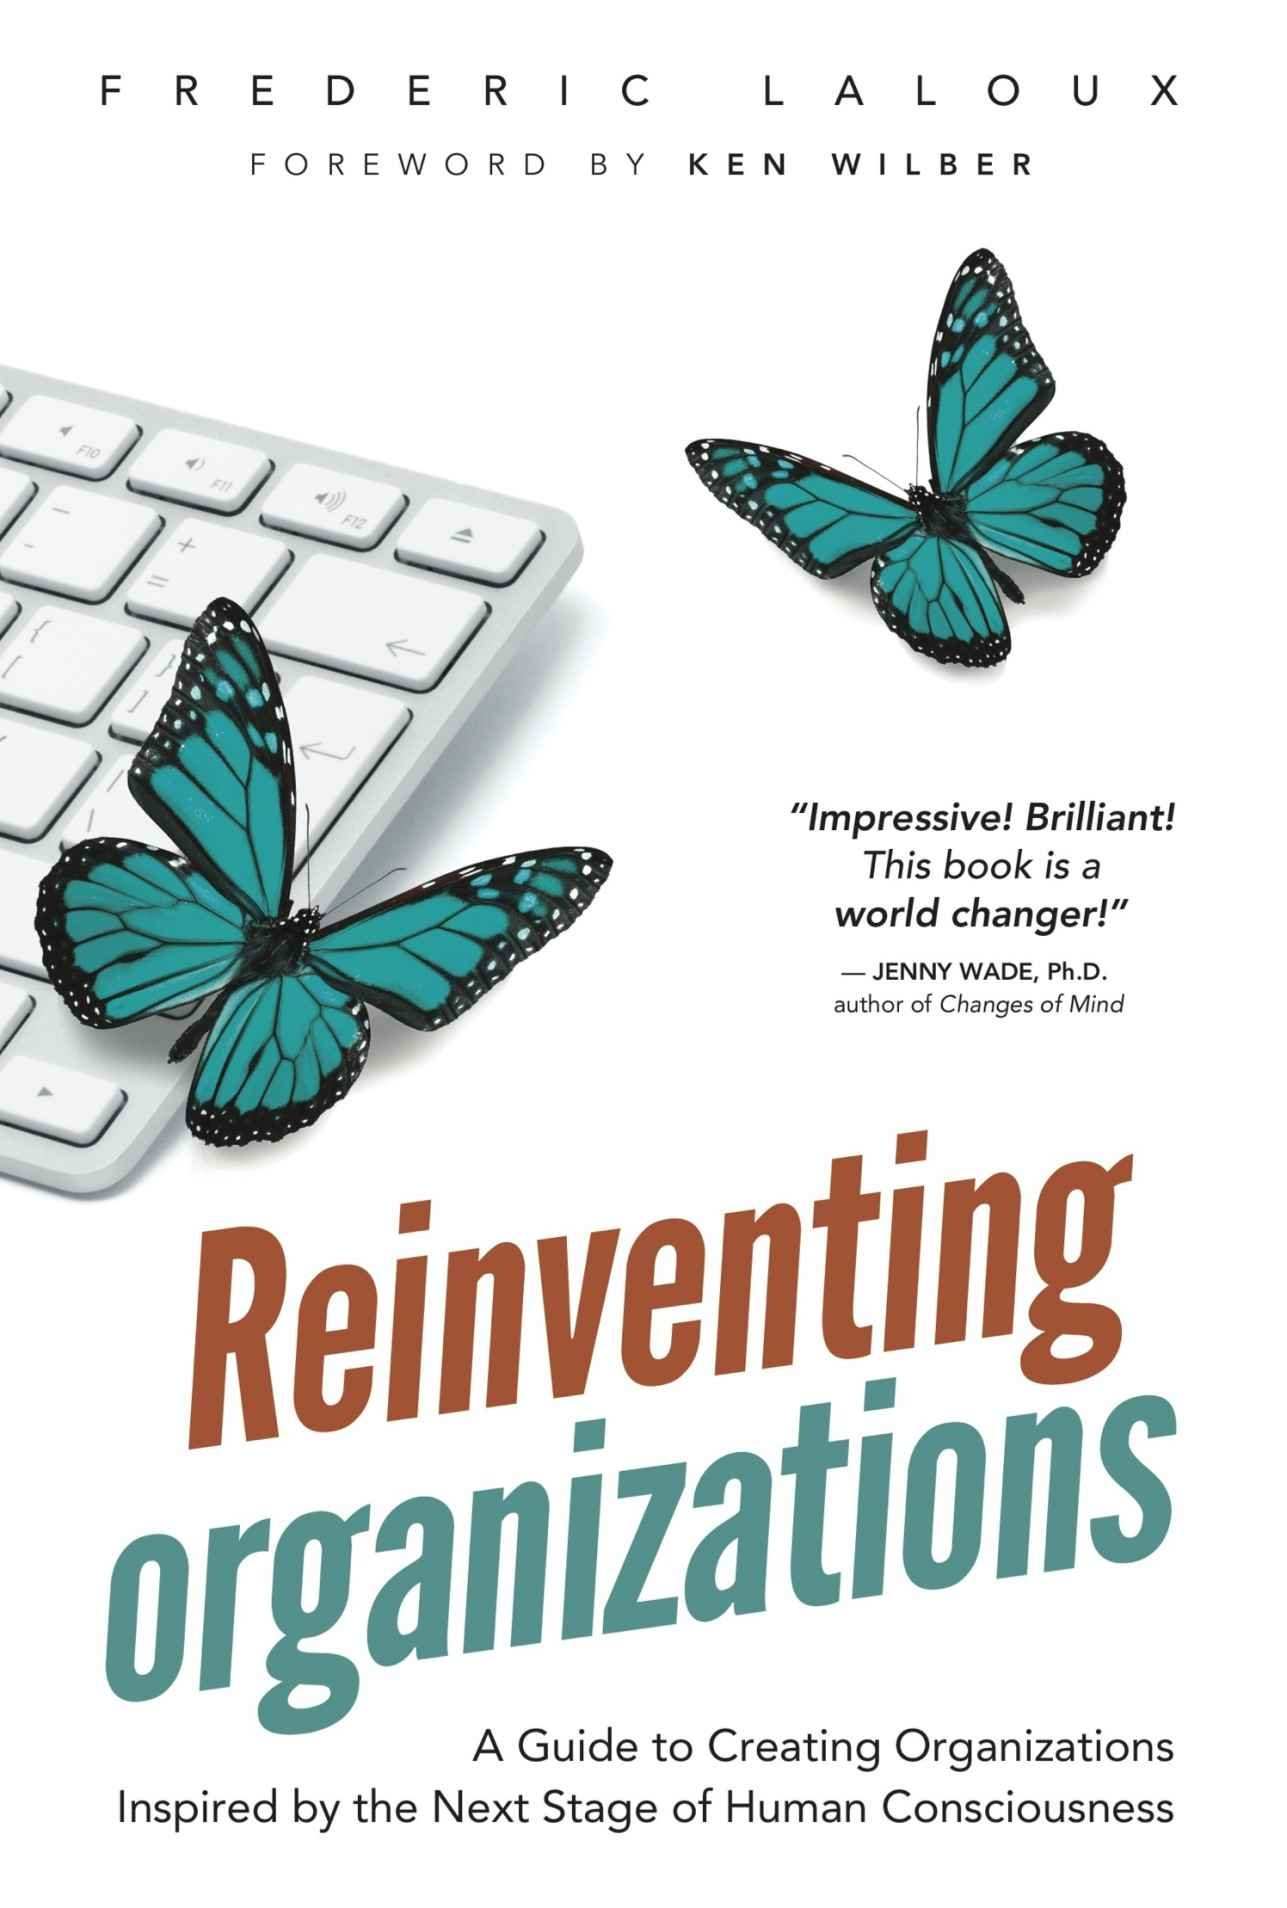 """REINVENTING ORGANIZATIONS BY FREDERIC LALOUX  Frederic's book  Reinventing Organizations    has sold more than 200,000 copies and is considered by many to be the most influential business book of this decade. Described as """"groundbreaking,"""" """"world-changing,"""" and """"a leap in management thinking"""" by some of the most respected scholars of management and human development, it has sparked a global movement of organizations adopting radically more powerful and soulful management practices. A former Associate Partner with McKinsey & Company, Laloux holds an MBA from INSEAD, and a degree in coaching from Newfield Network in Boulder, Colorado.   Mpre pm Reinventing Organizations"""